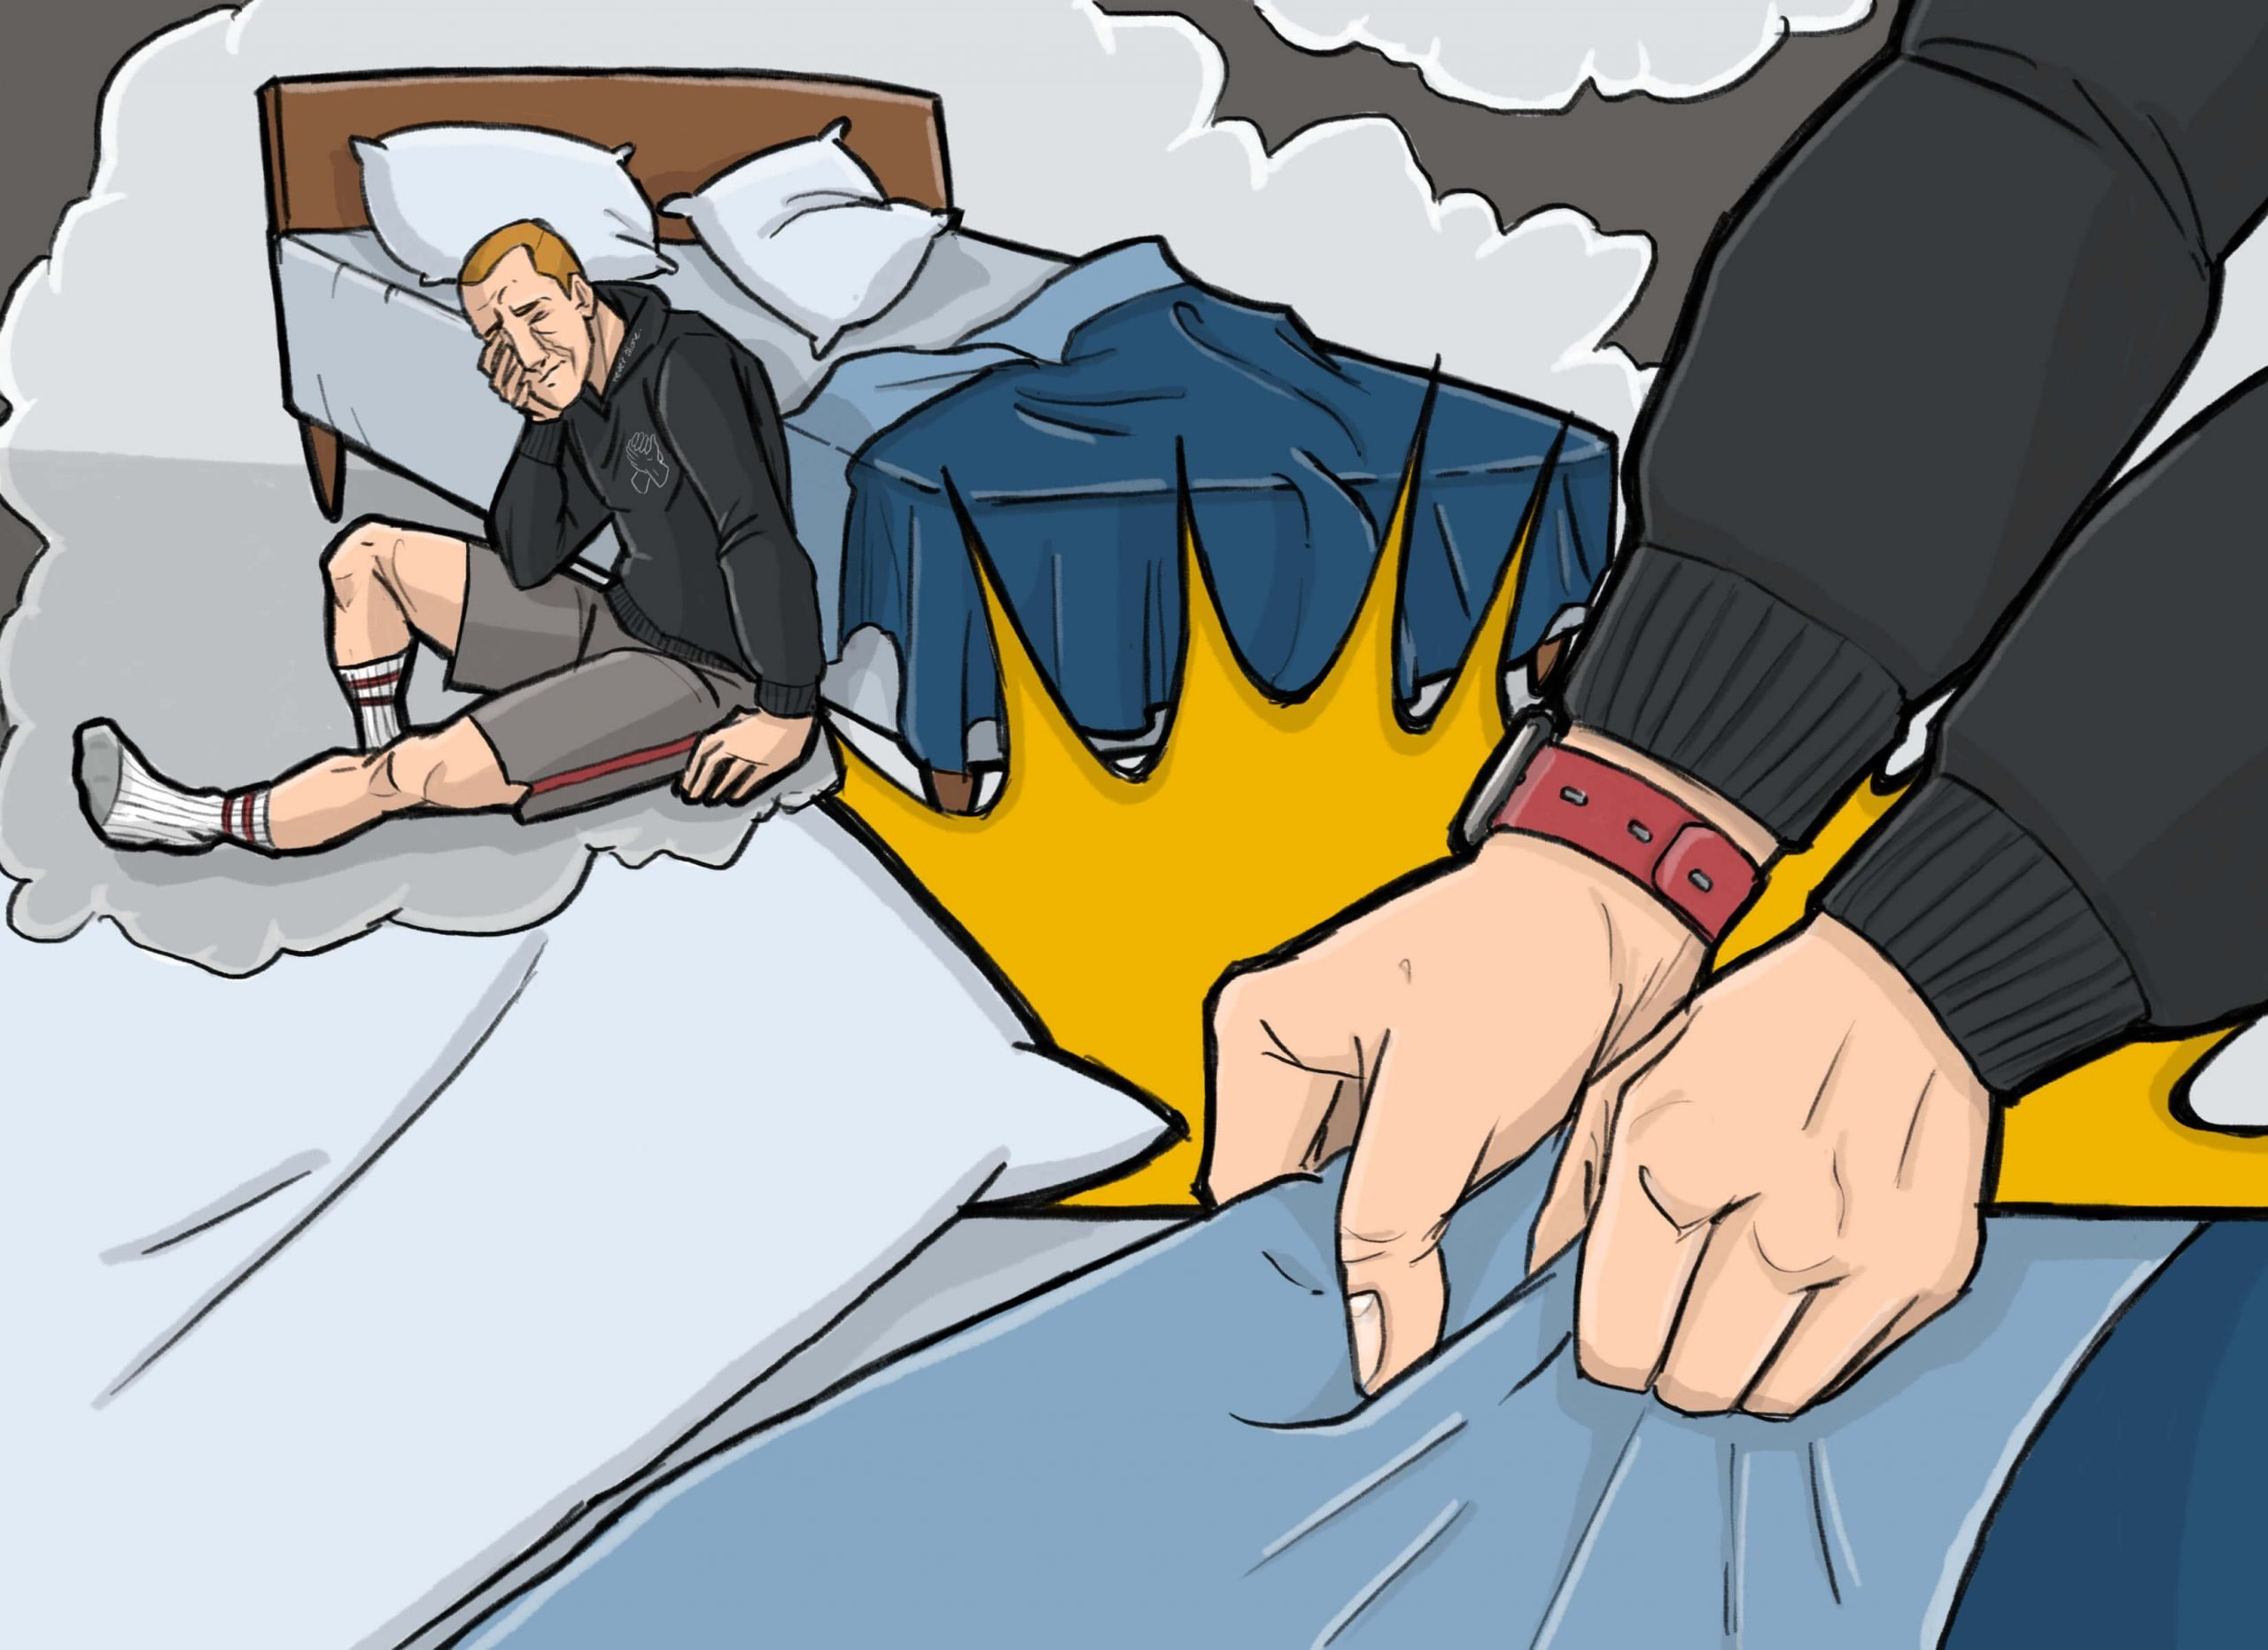 This is a drawing of a man making his bed to get over his heart break